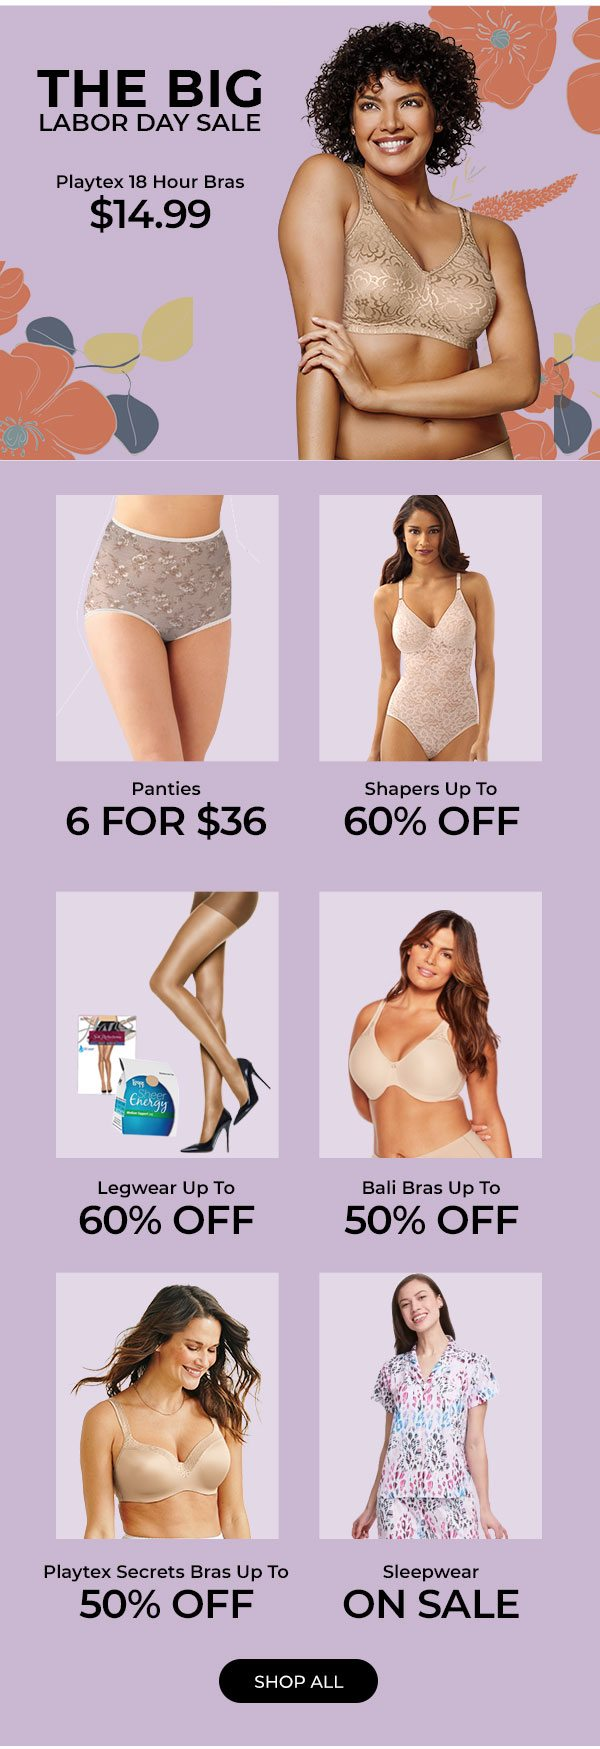 Shop The Big Labor Day Sale - Turn on your images